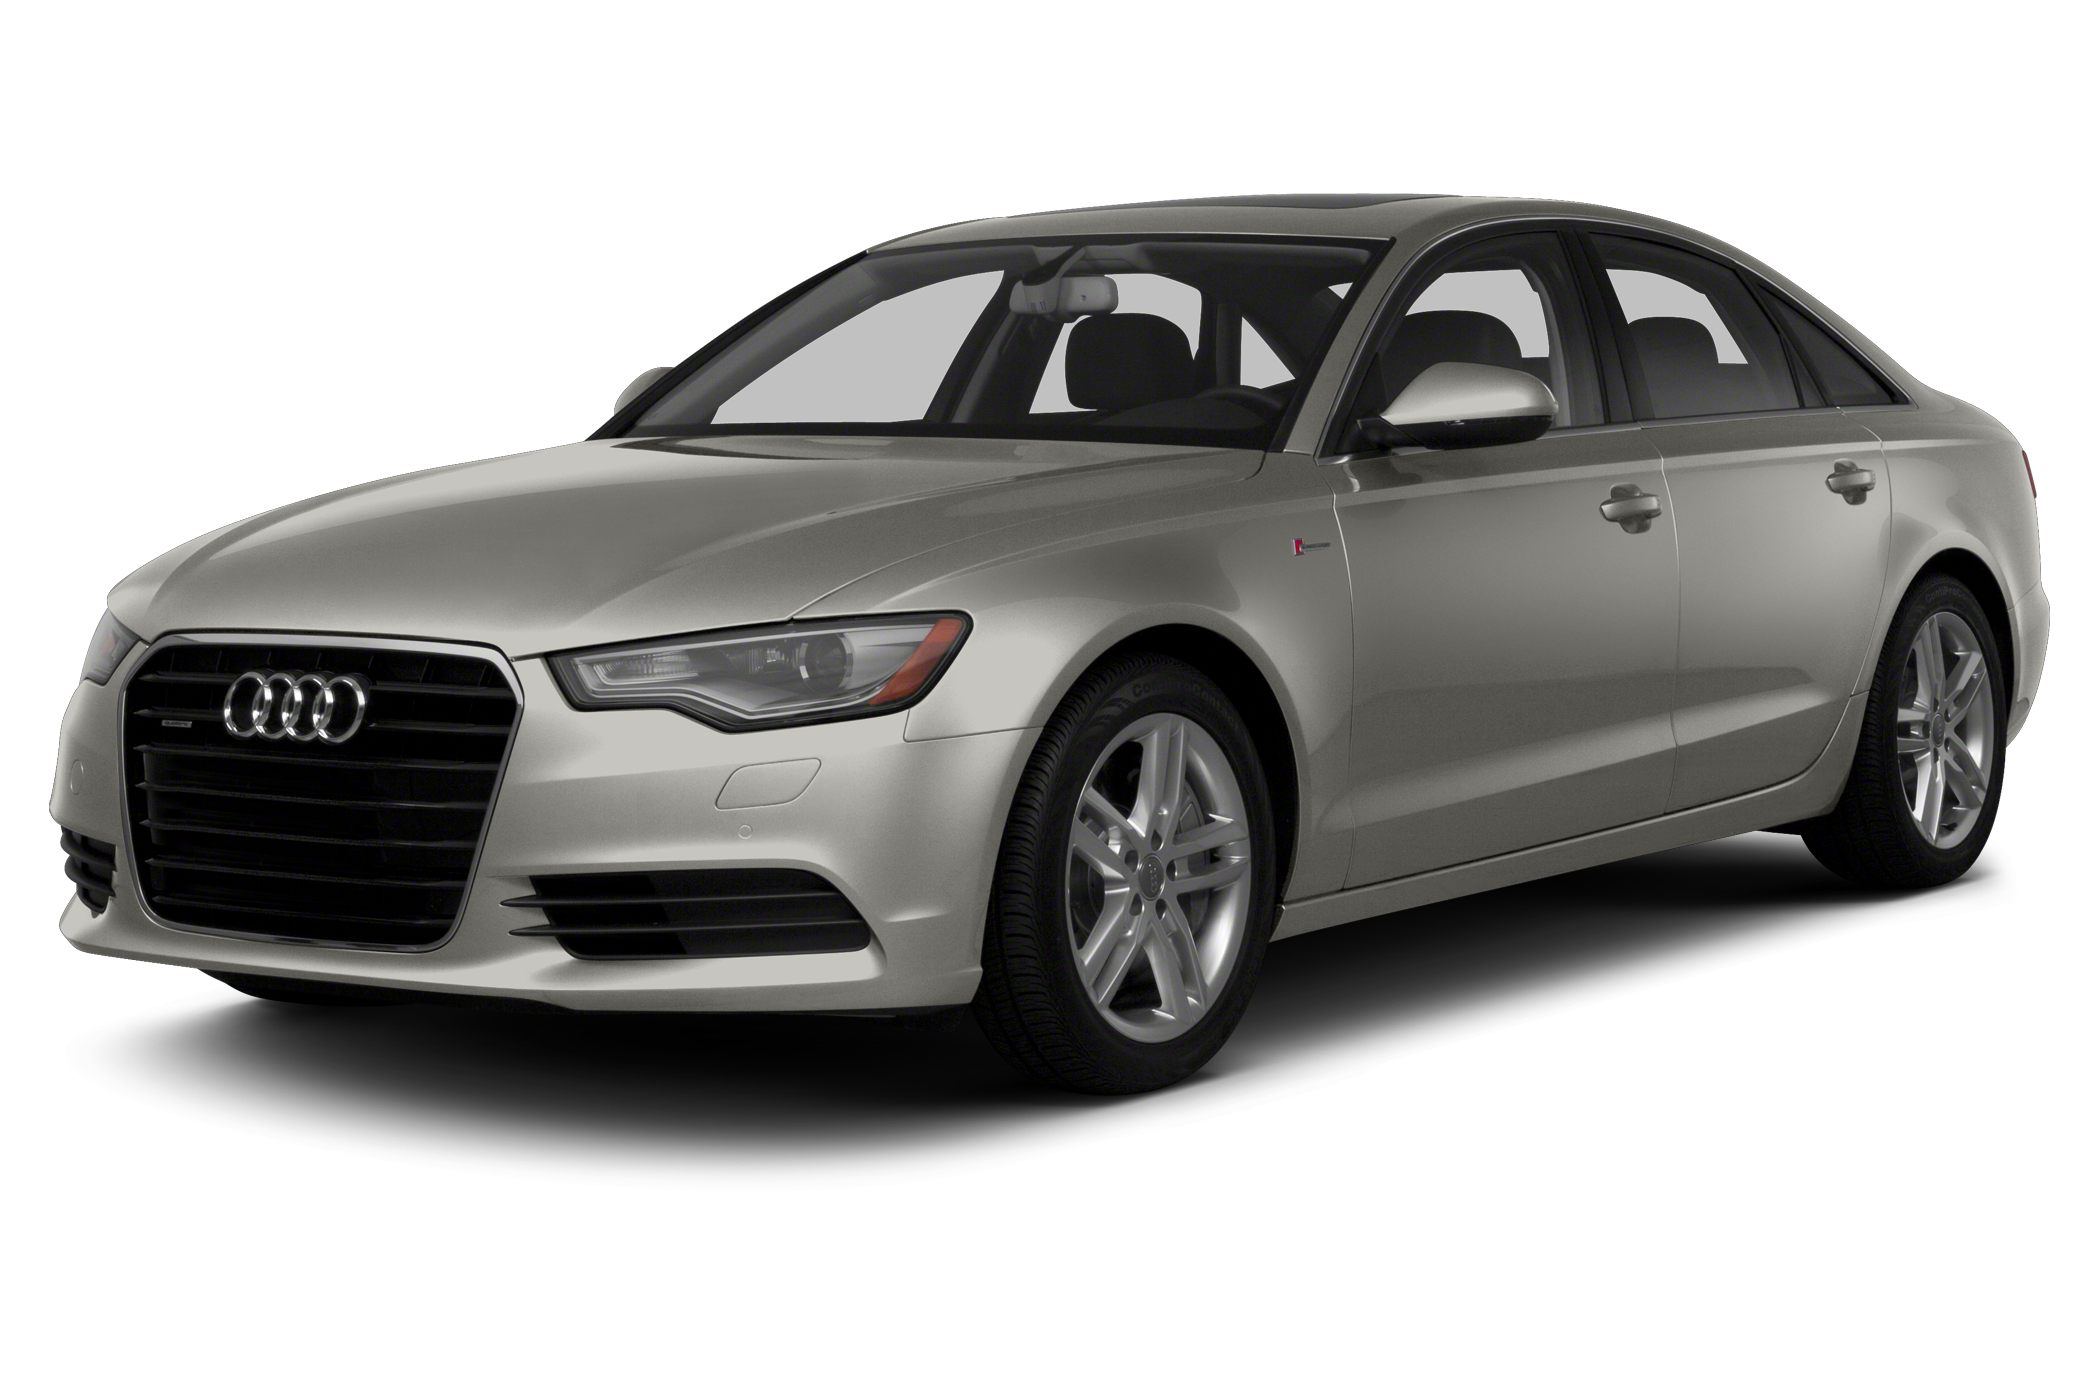 2014 Audi A6 3.0 TDI Premium Plus Sedan for sale in Warrington for $0 with 9,848 miles